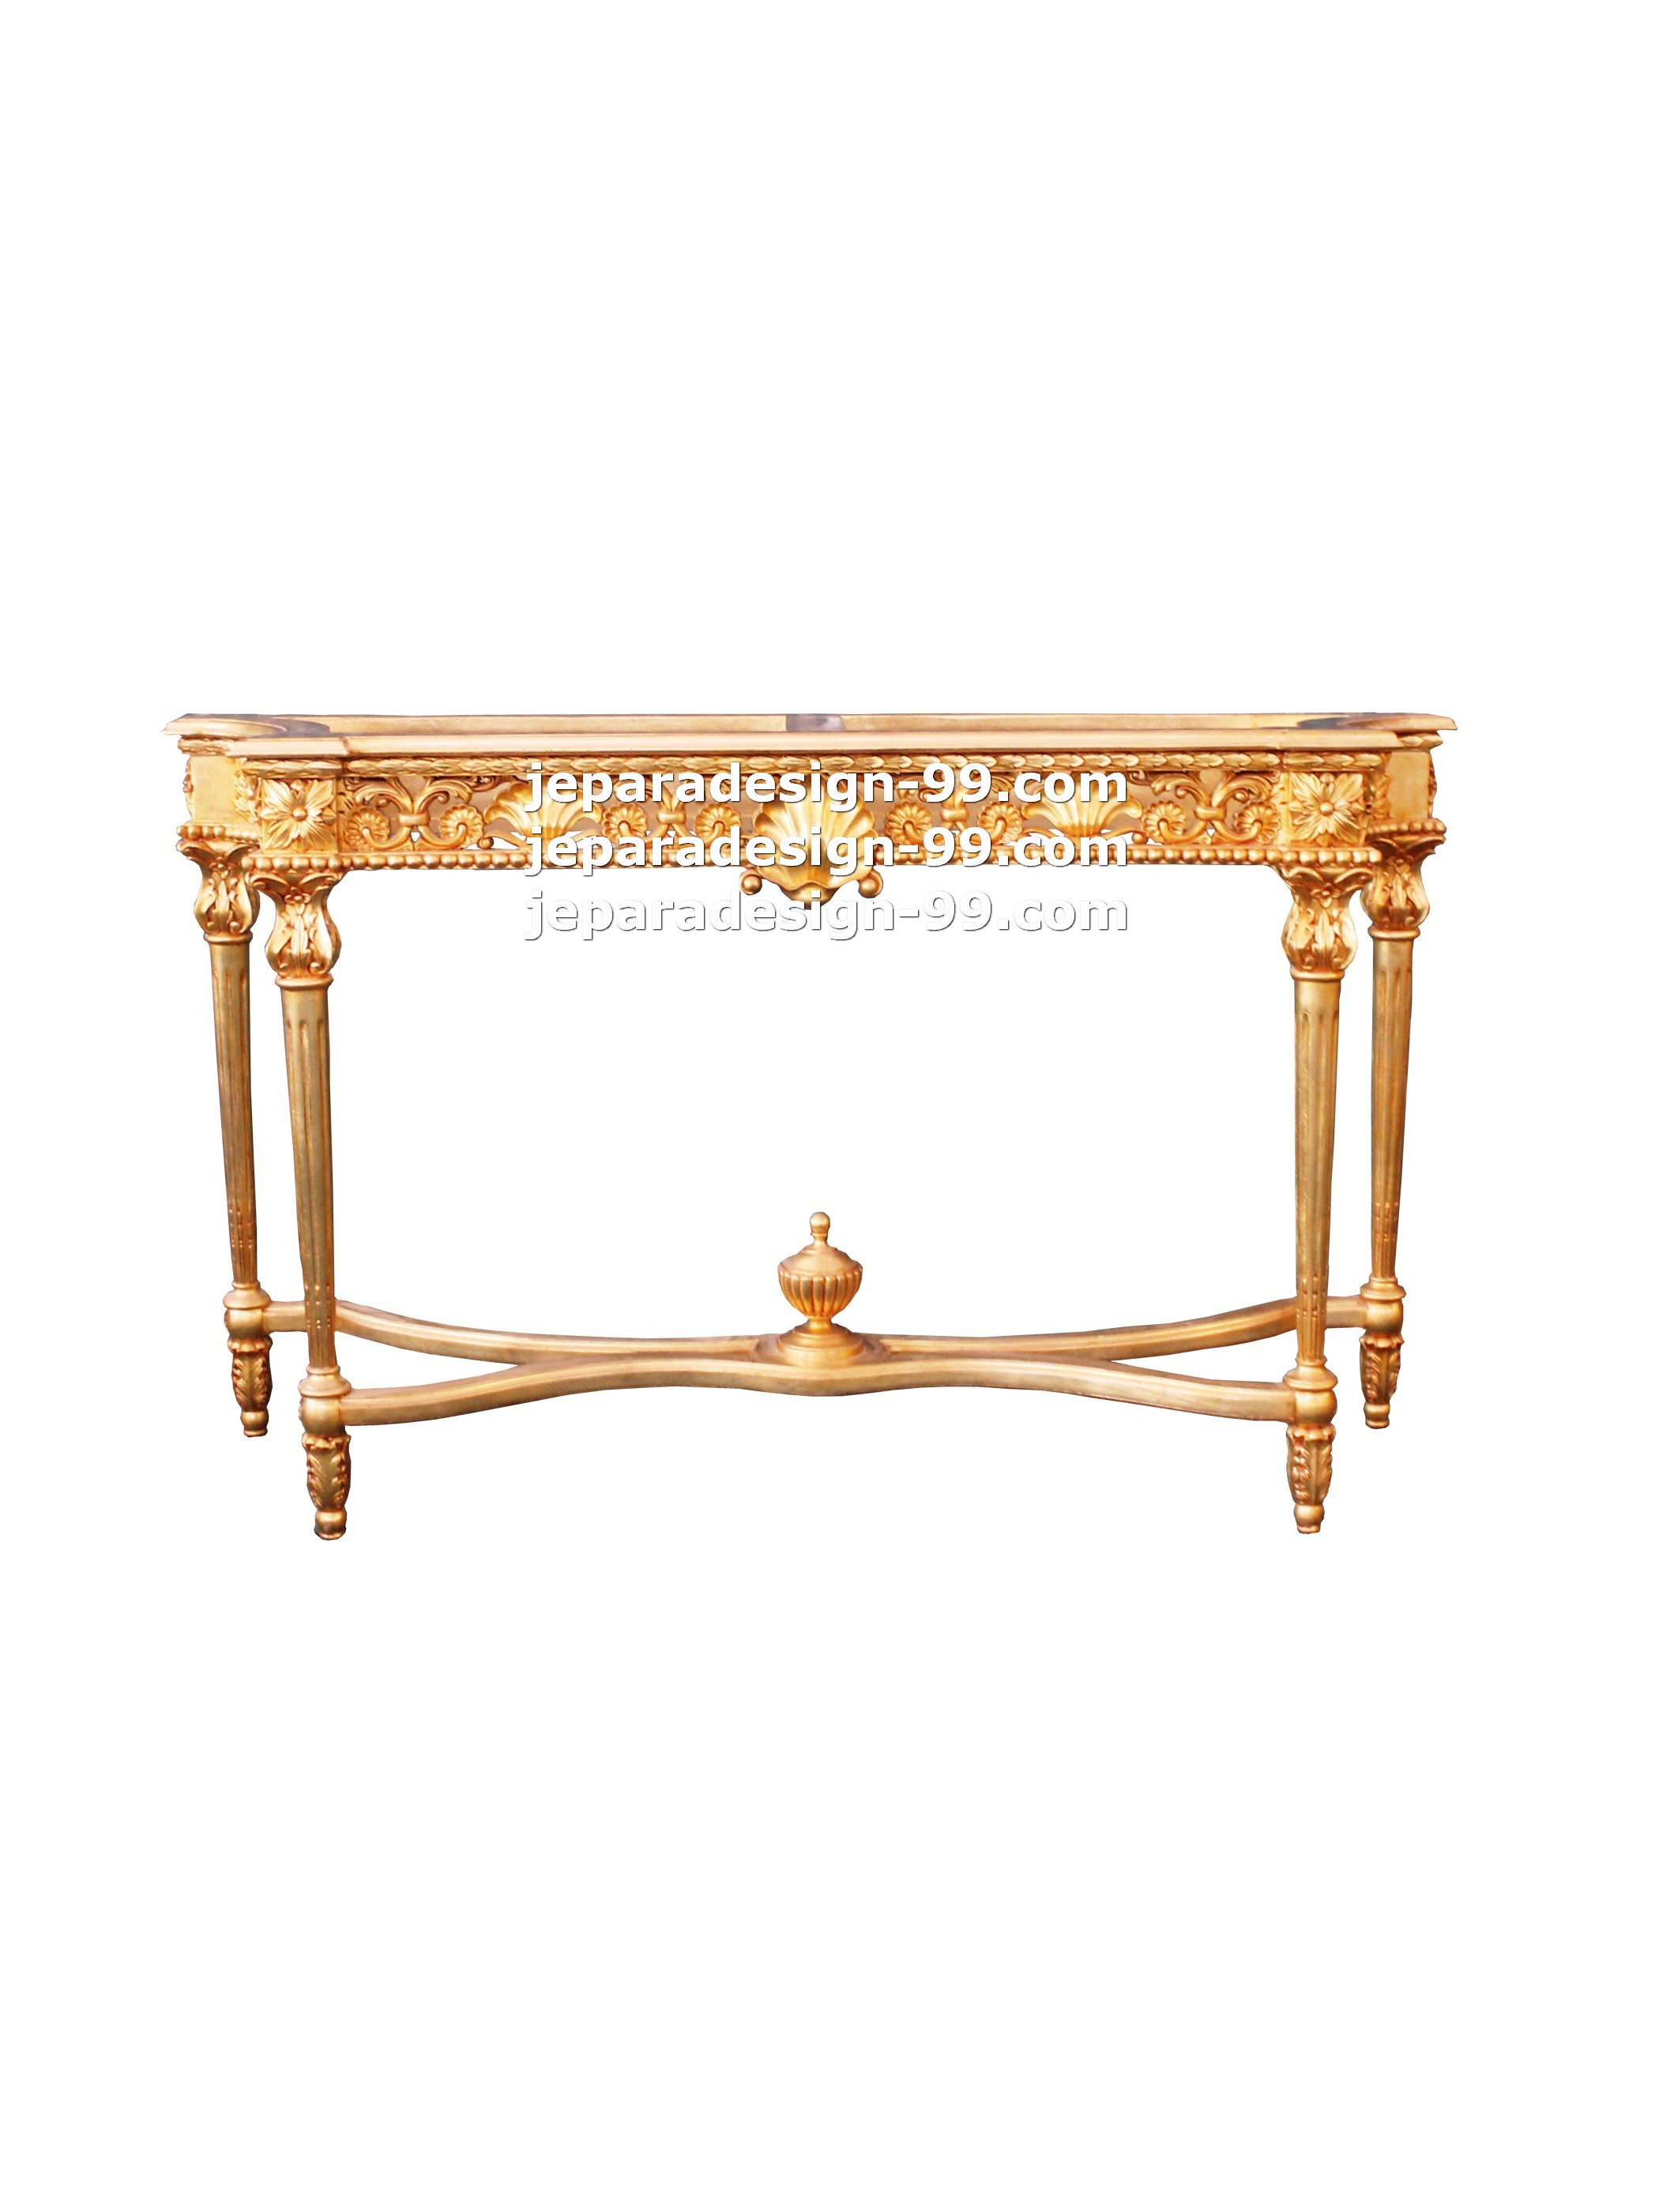 French provincial classic console table by jepara design 99 console table cst 002 gl watchthetrailerfo